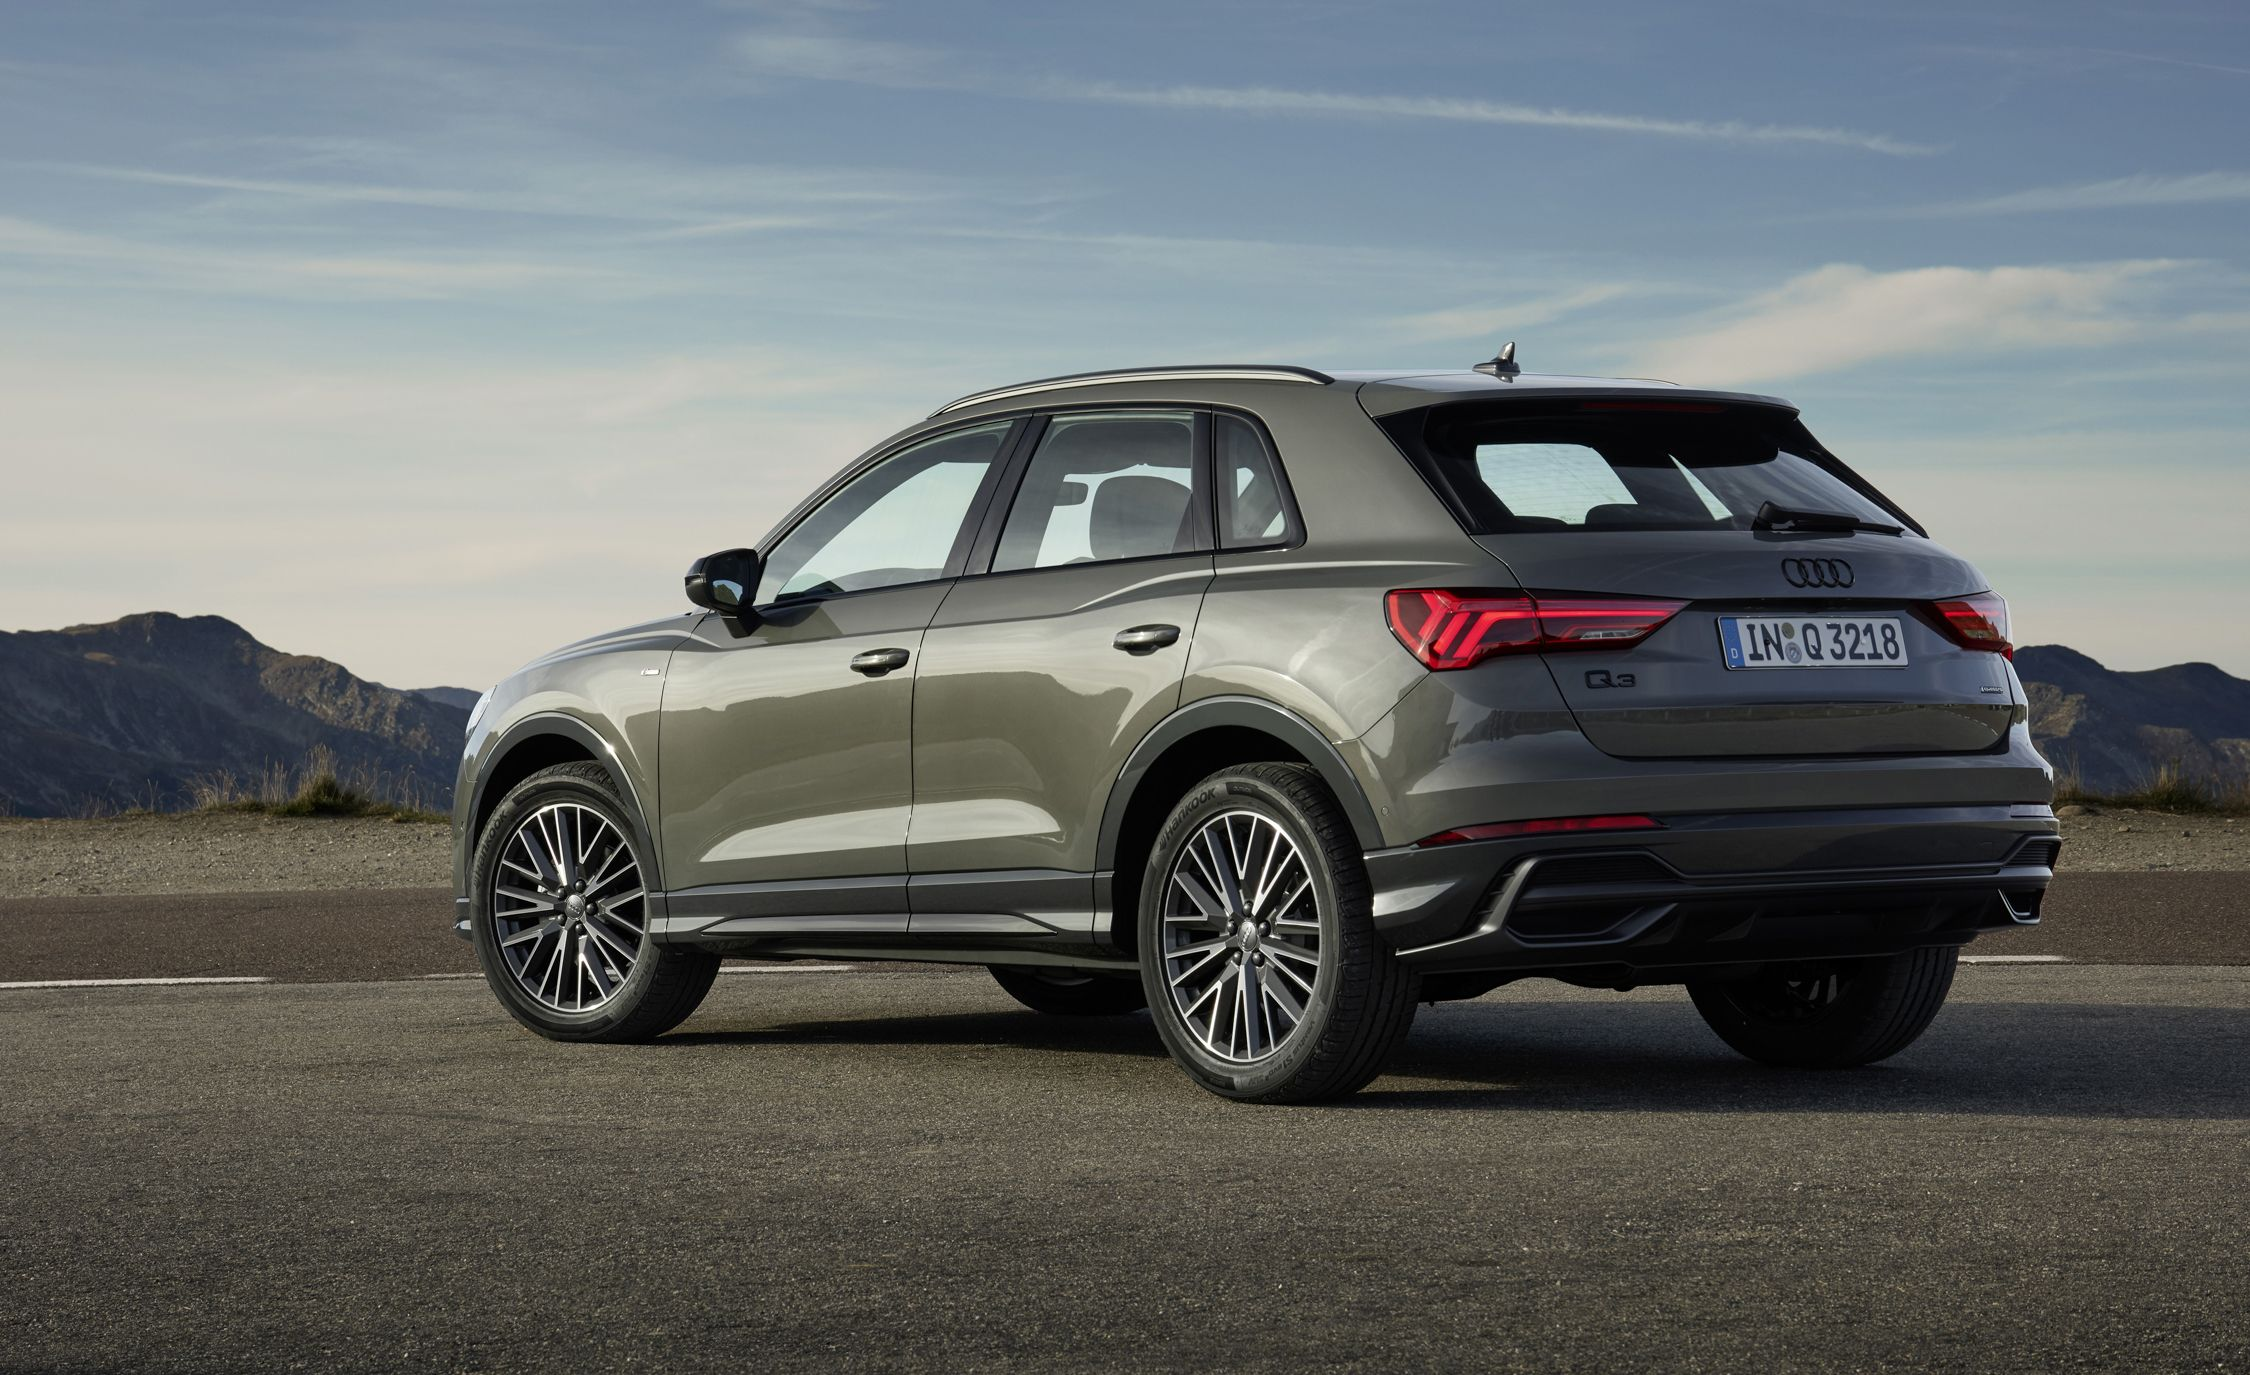 2019 Audi Q3 Suv Is Larger And Vastly Improved